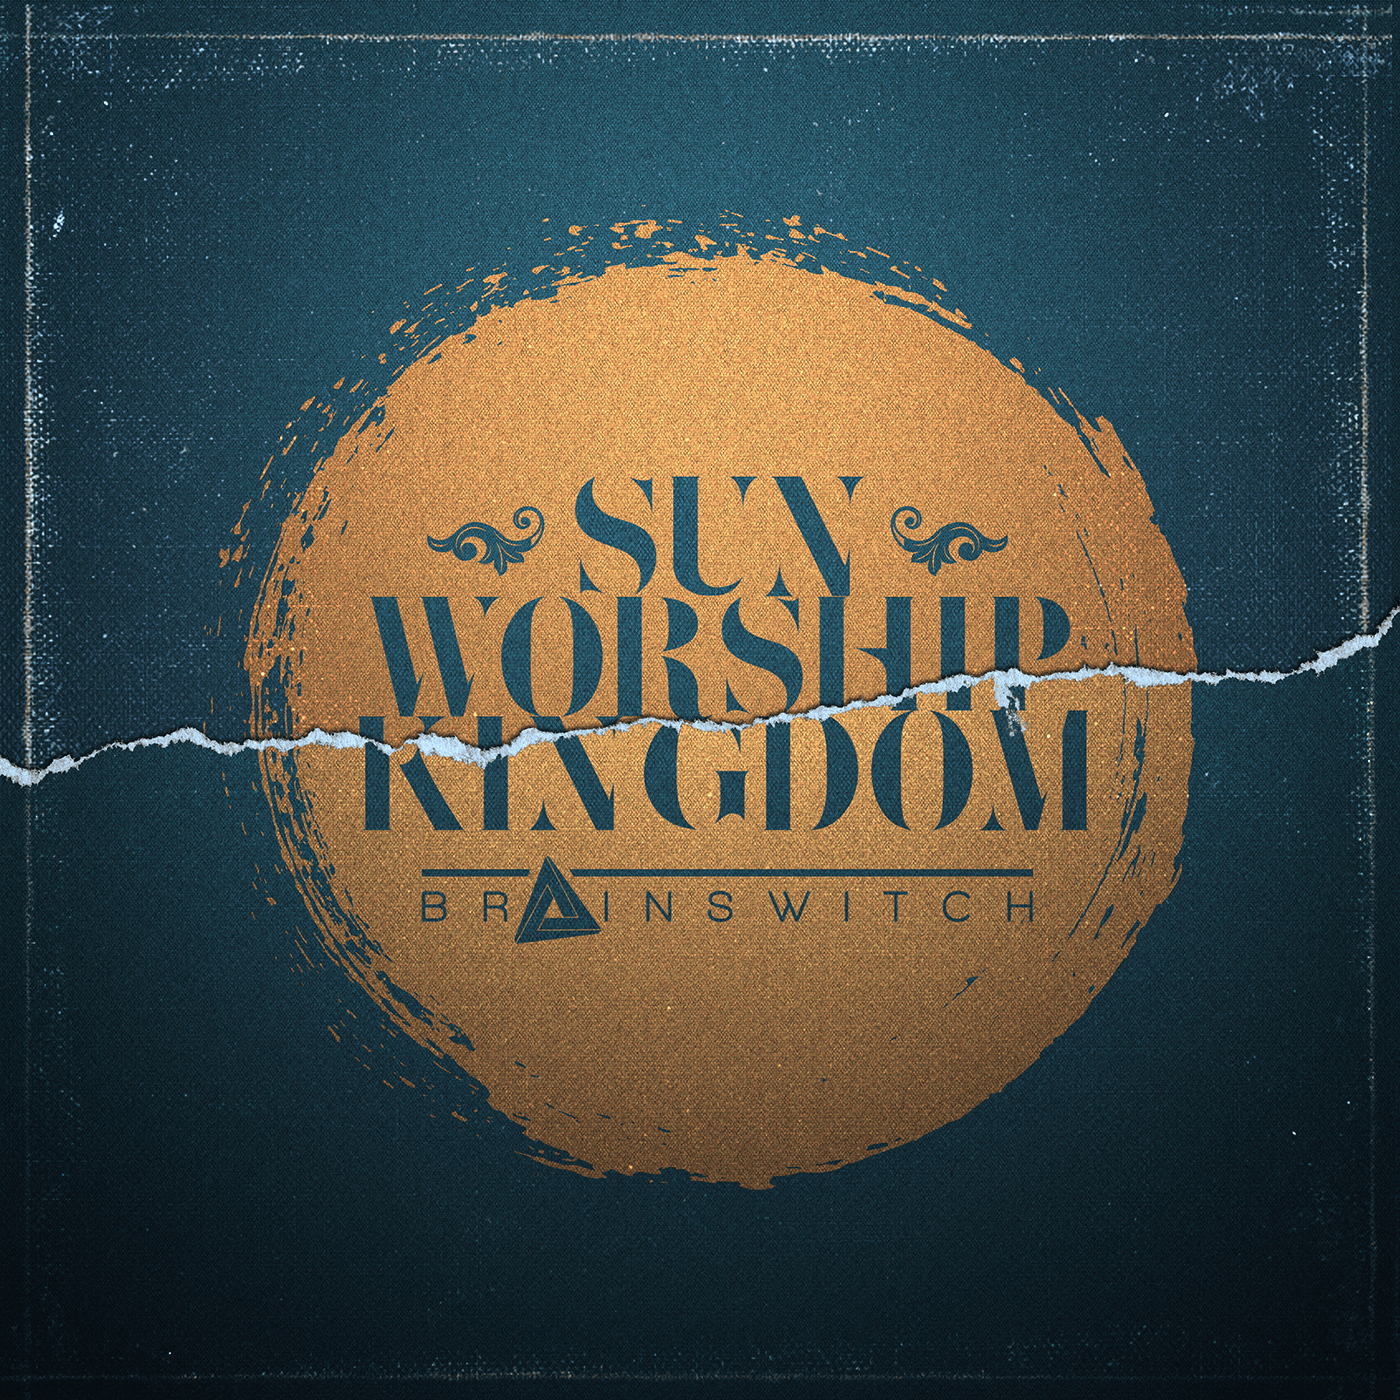 Brainswitch logo & cover